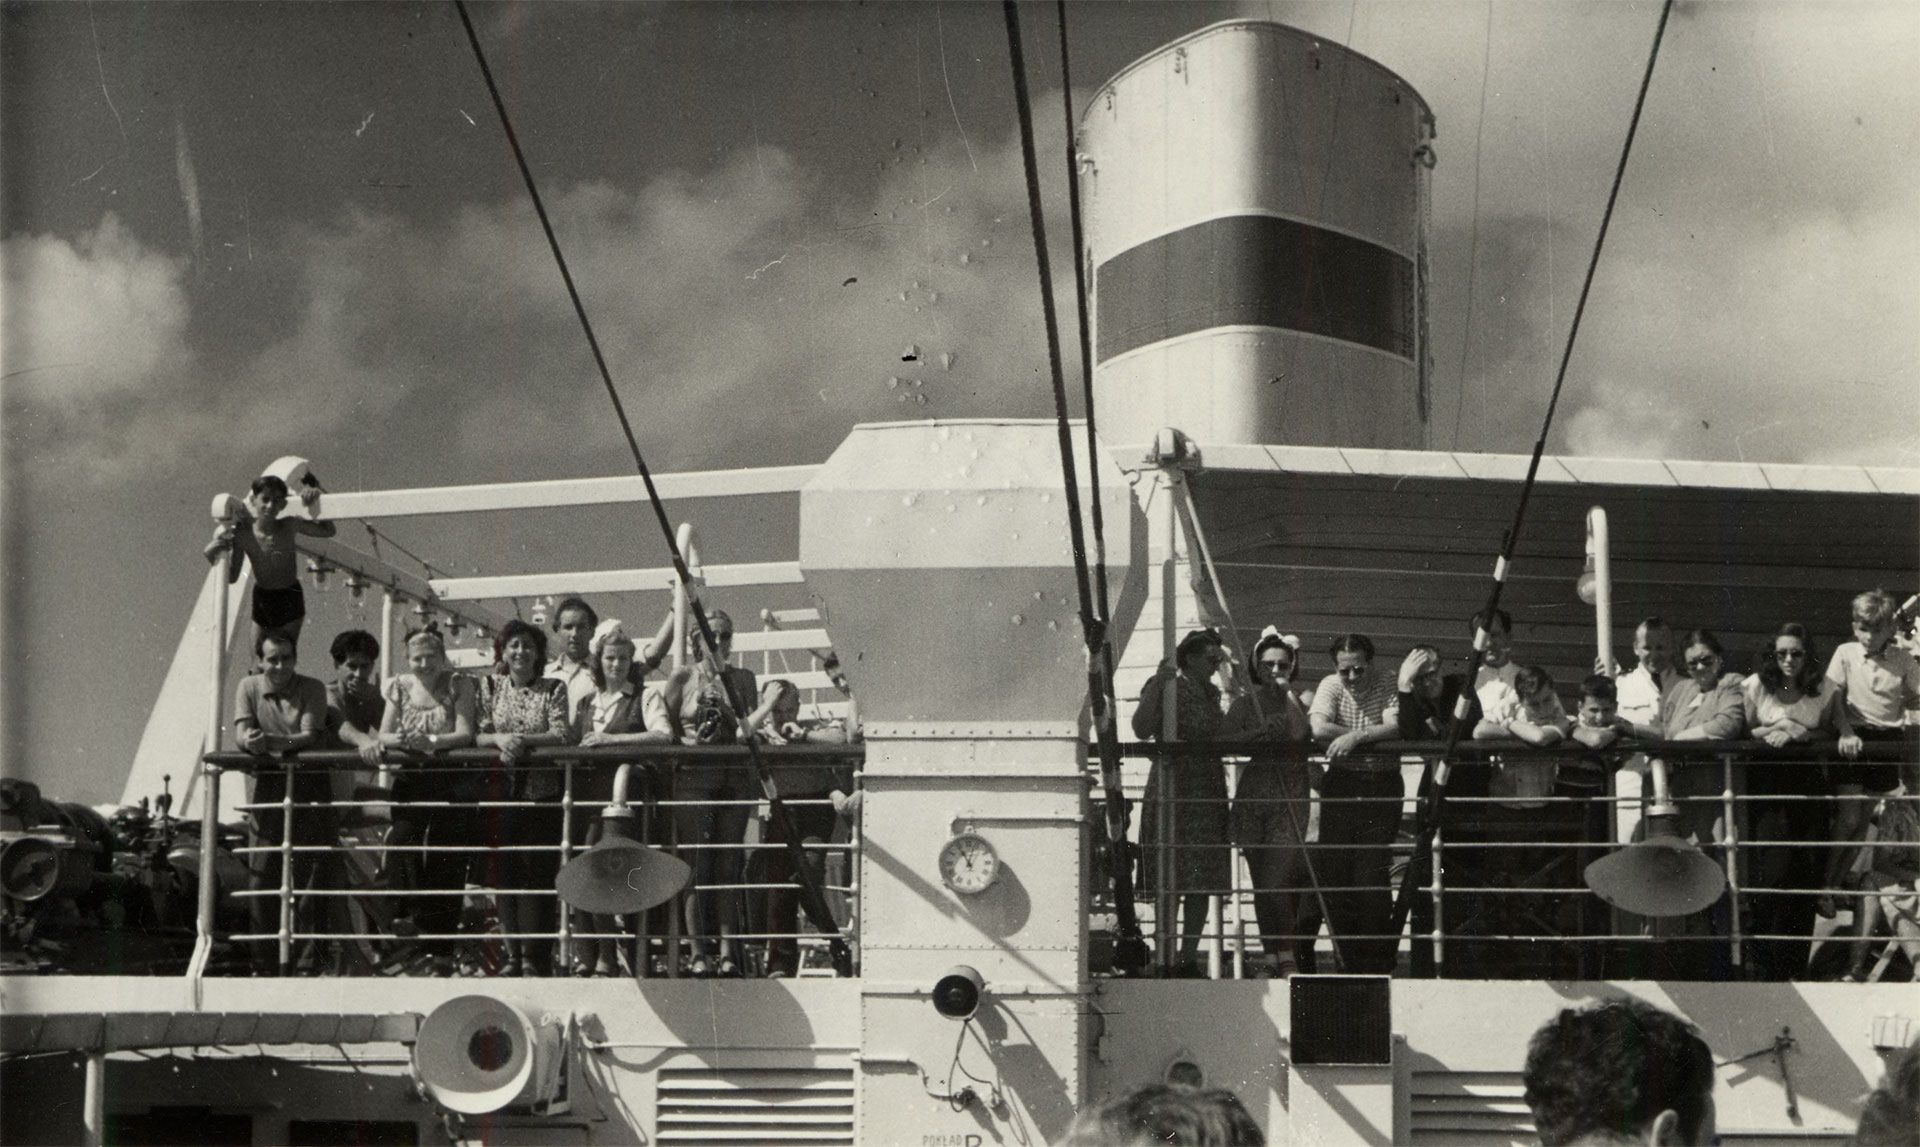 Photograph of passengers on the Sherpa Pinto Ship's deck, 1944. Montreal Holocaust Museum Collection, donated by Maurice Shenkier